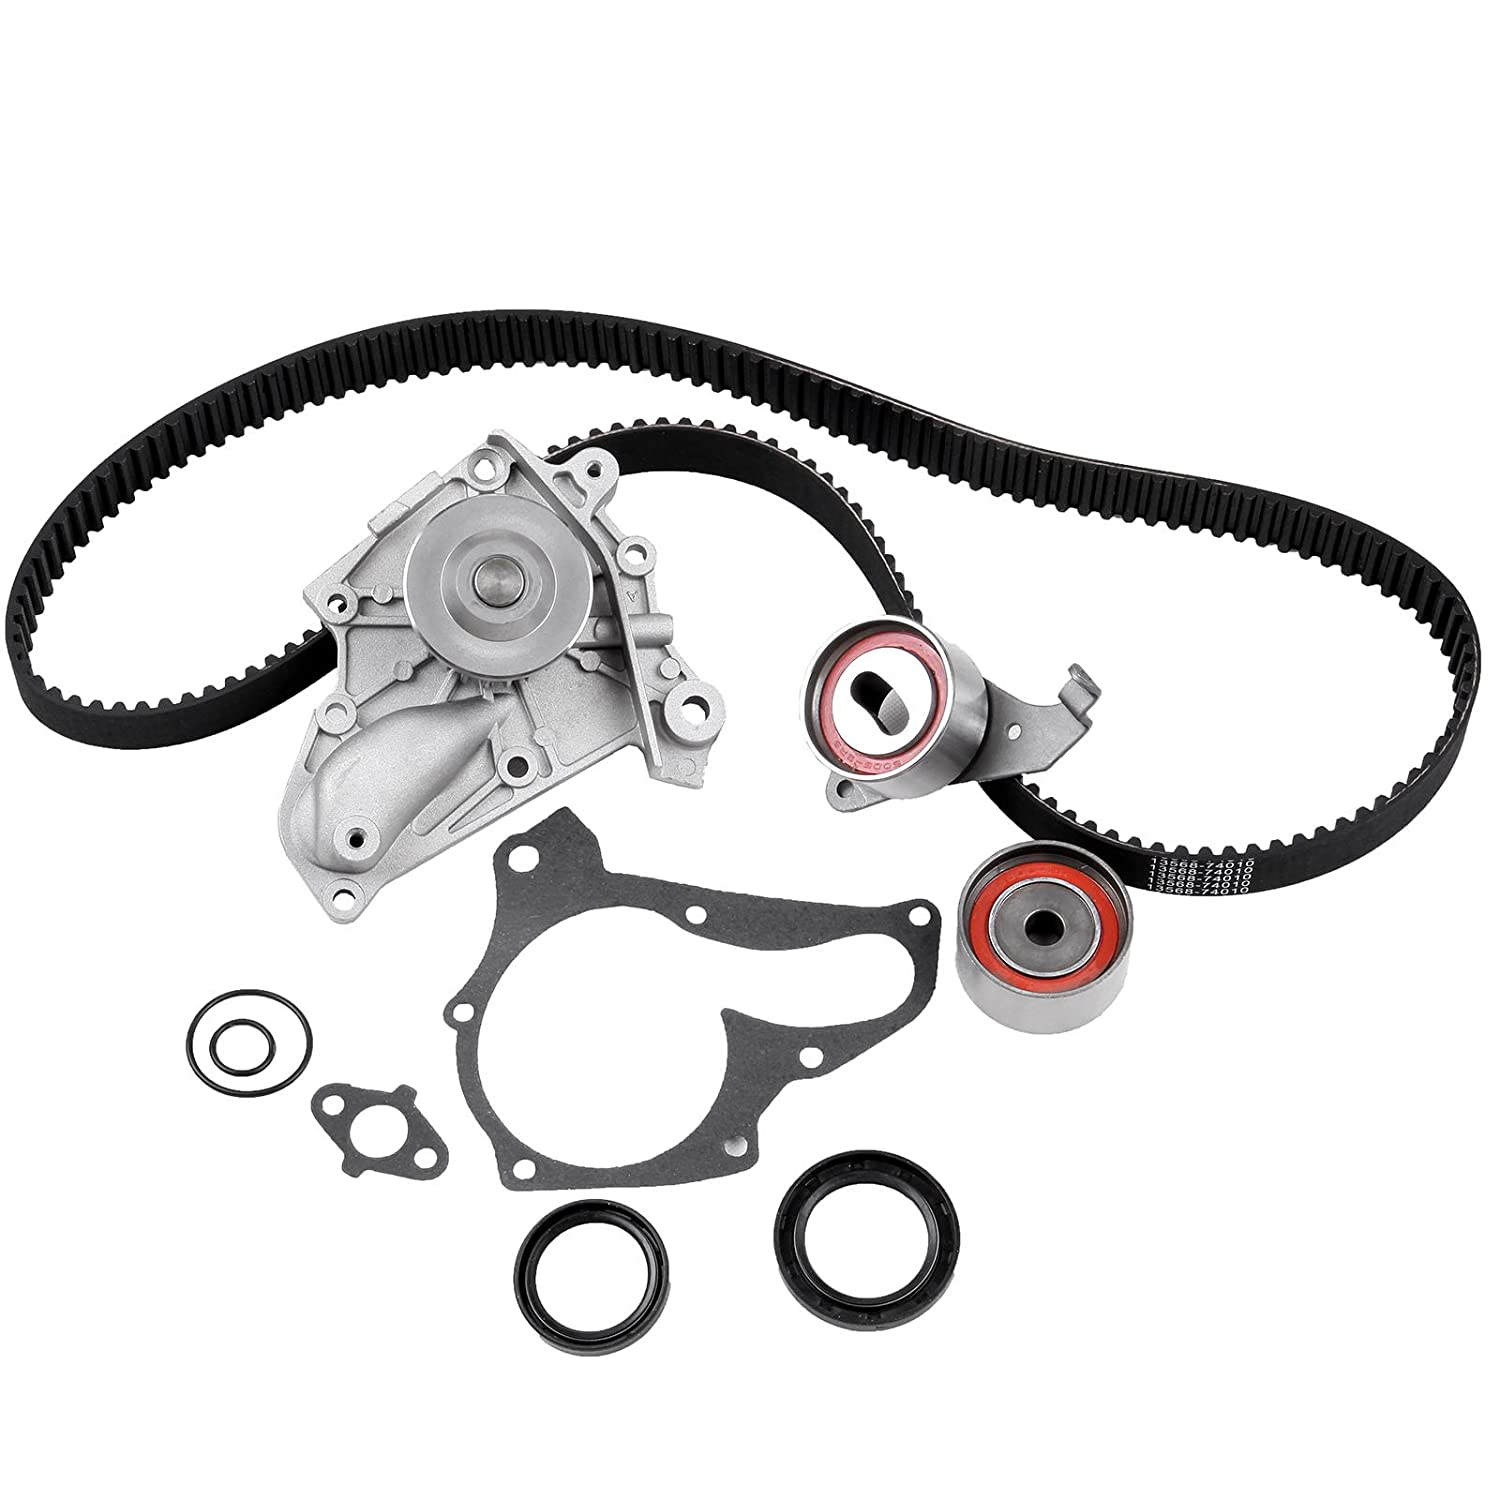 Timing Belt Water Pump Kit, ECCPP TBK138WP For 1987-2001 Toyota Camry Celica Solara 2.0L 2.2L Timing Belt Water Pump Tensioner 3SFE 5SFE TBK138GMB